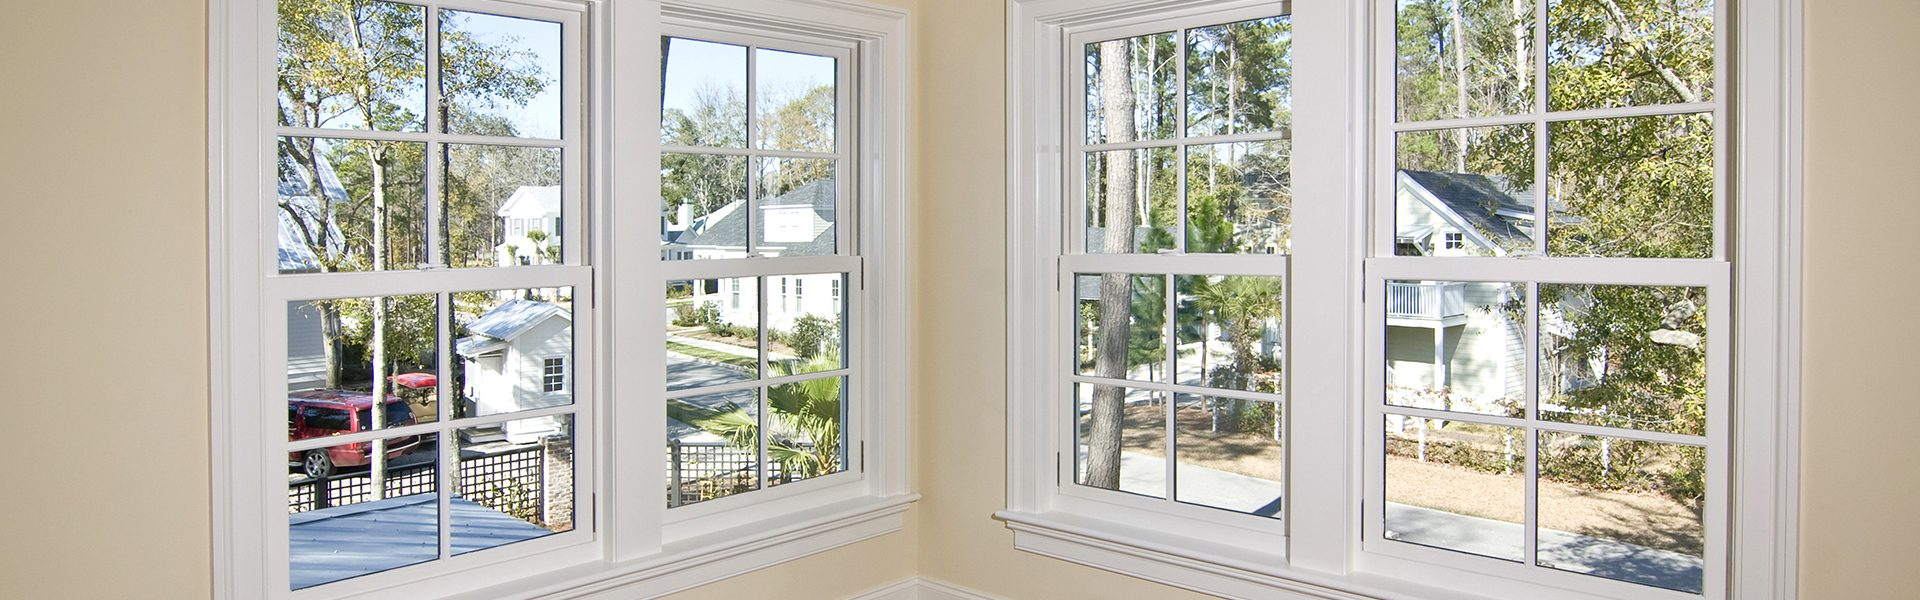 Double Glazing Prices Quotes Guildford